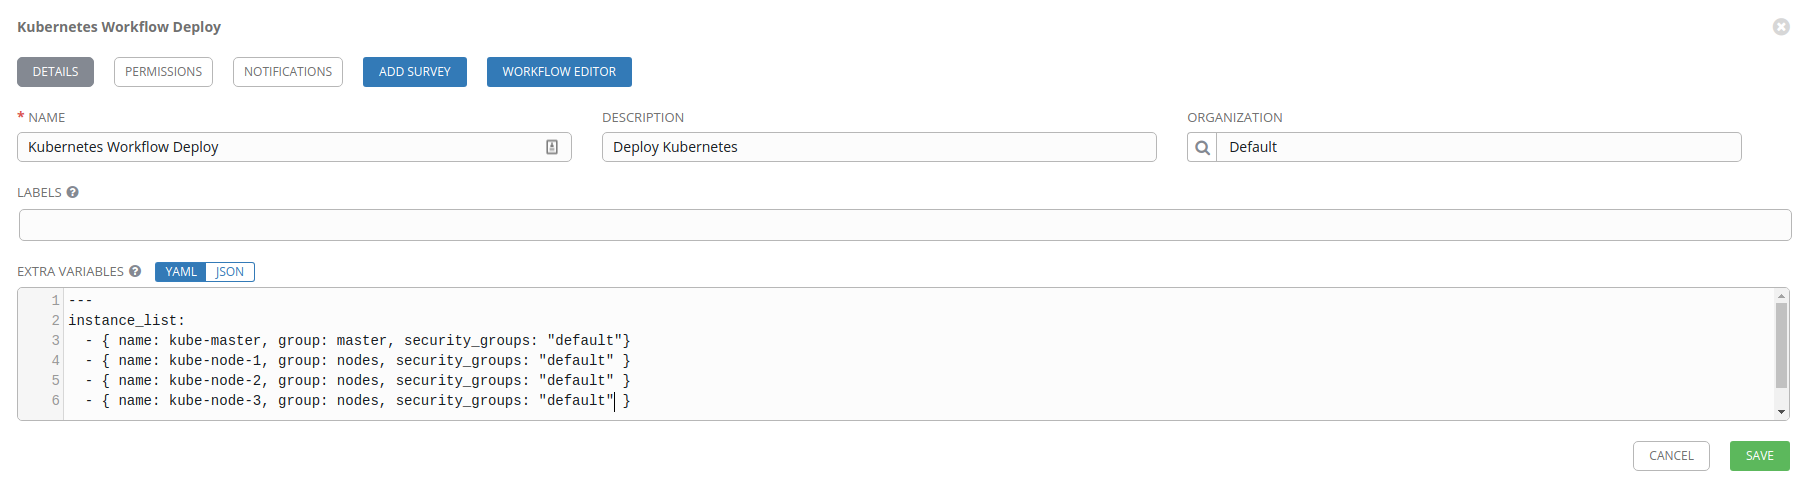 Kubernetes workflow template configuration